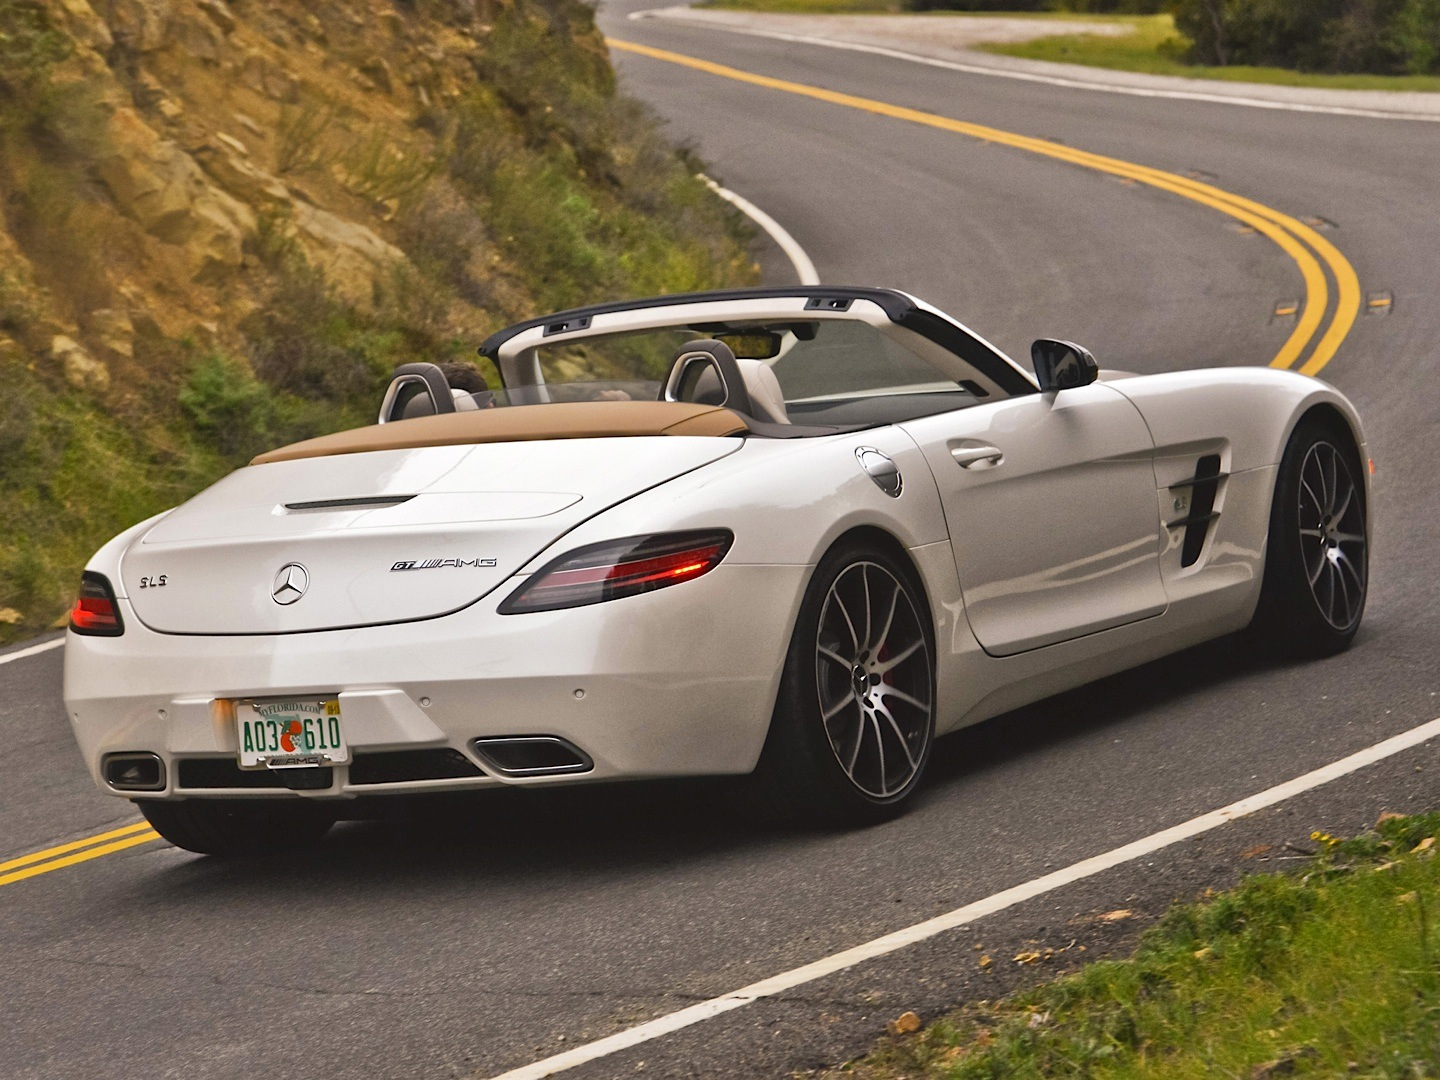 Mercedes Benz Sls Amg Gt Roadster Gets Reviewed By